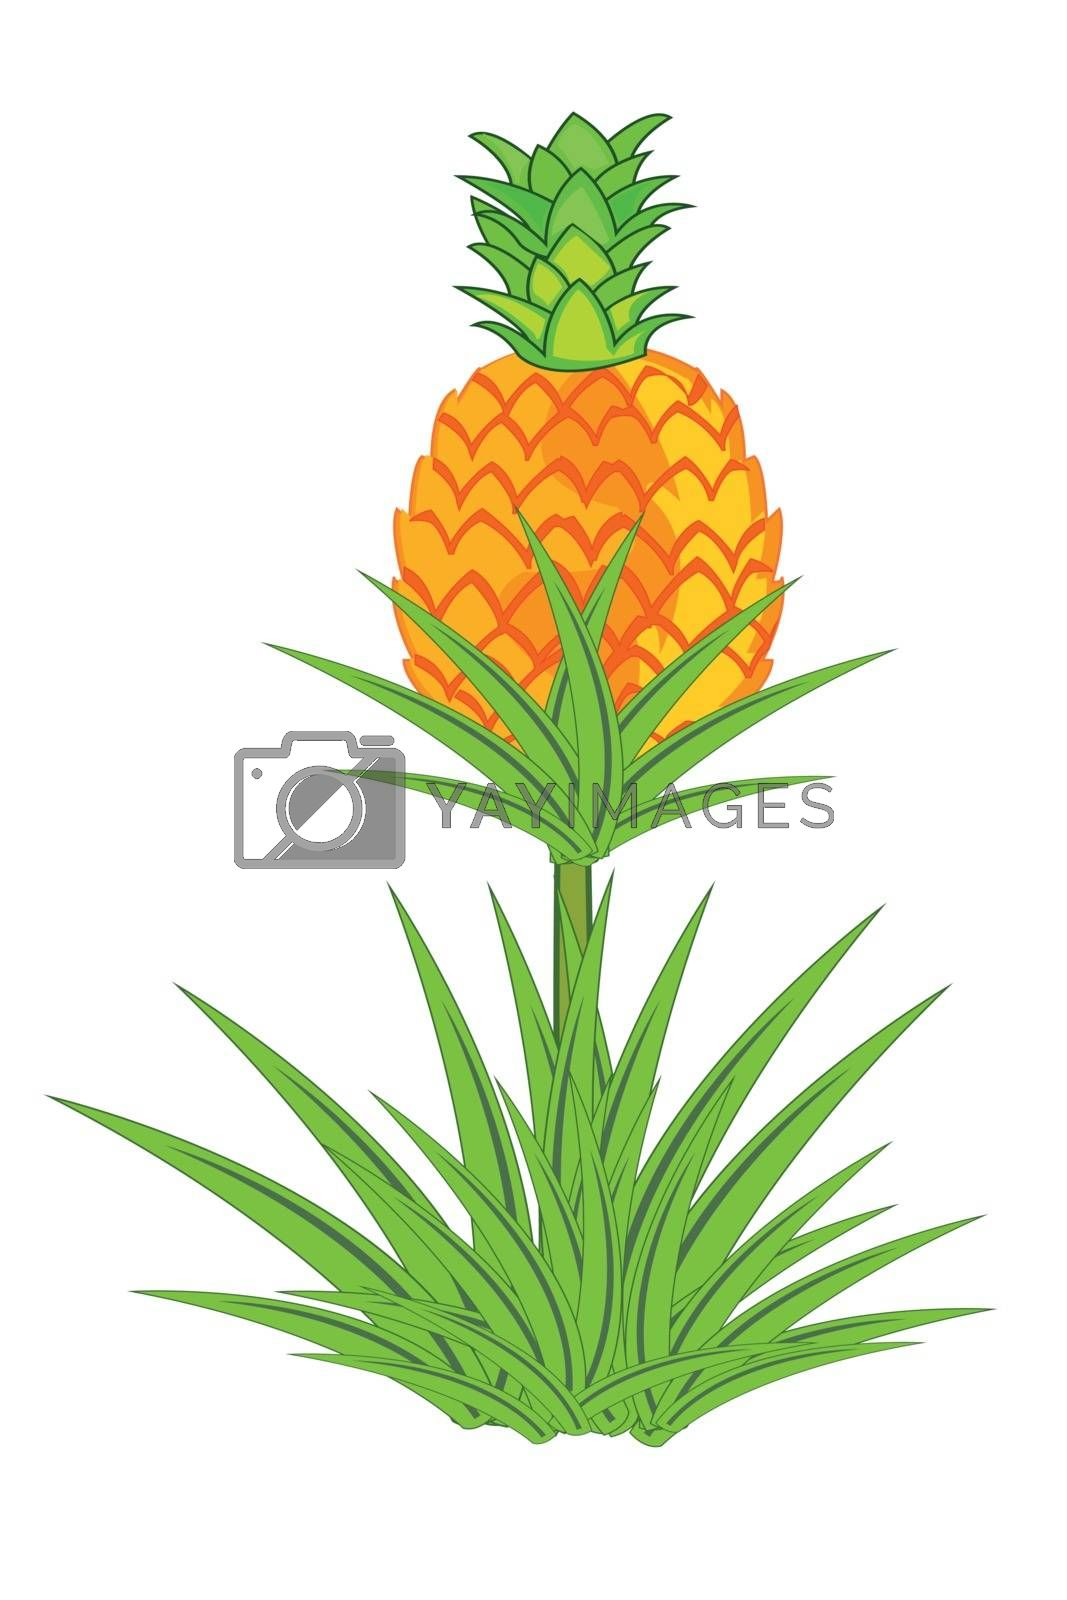 Royalty free image of Pineapple plant with roots isolated on white background. by cobol1964